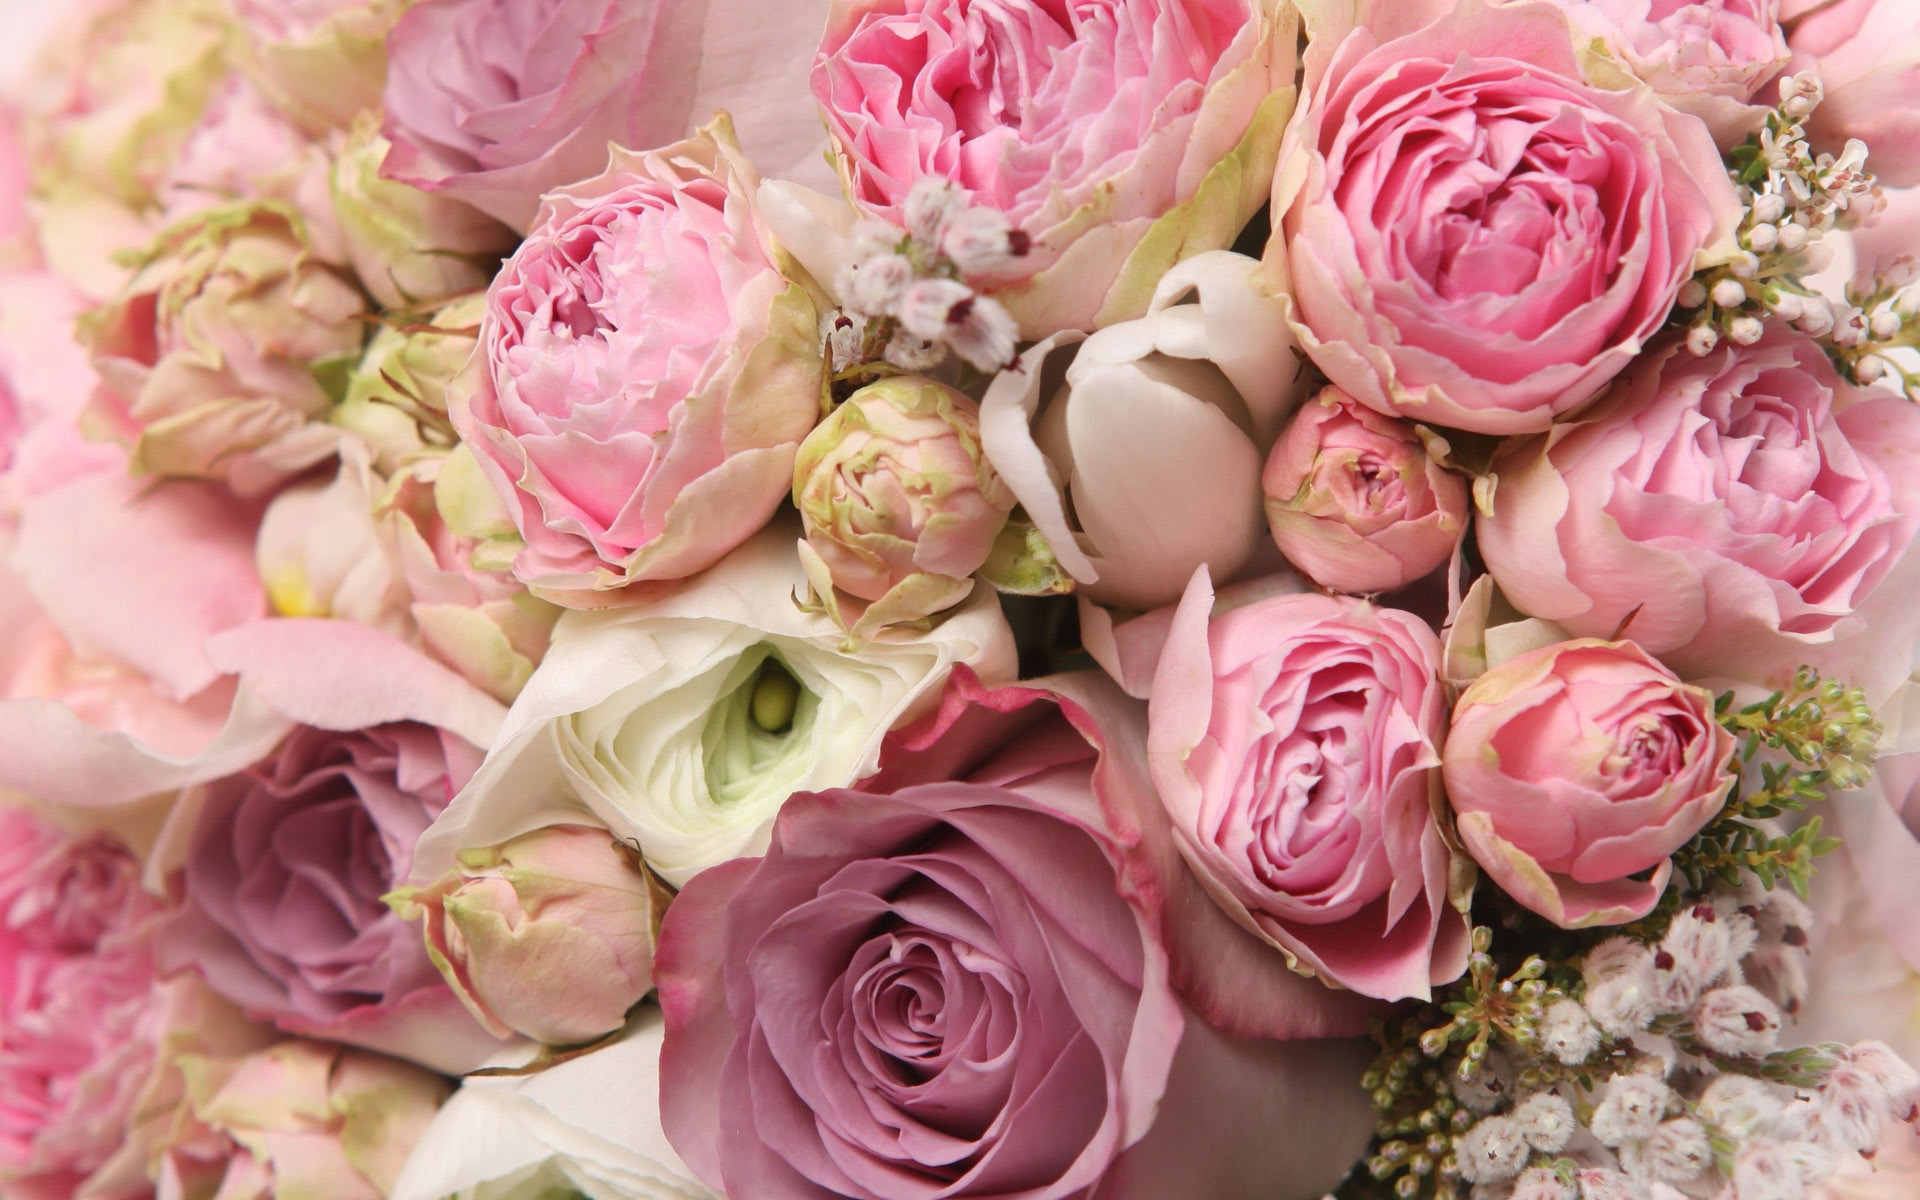 Roses and peonies bouquet wallpaper